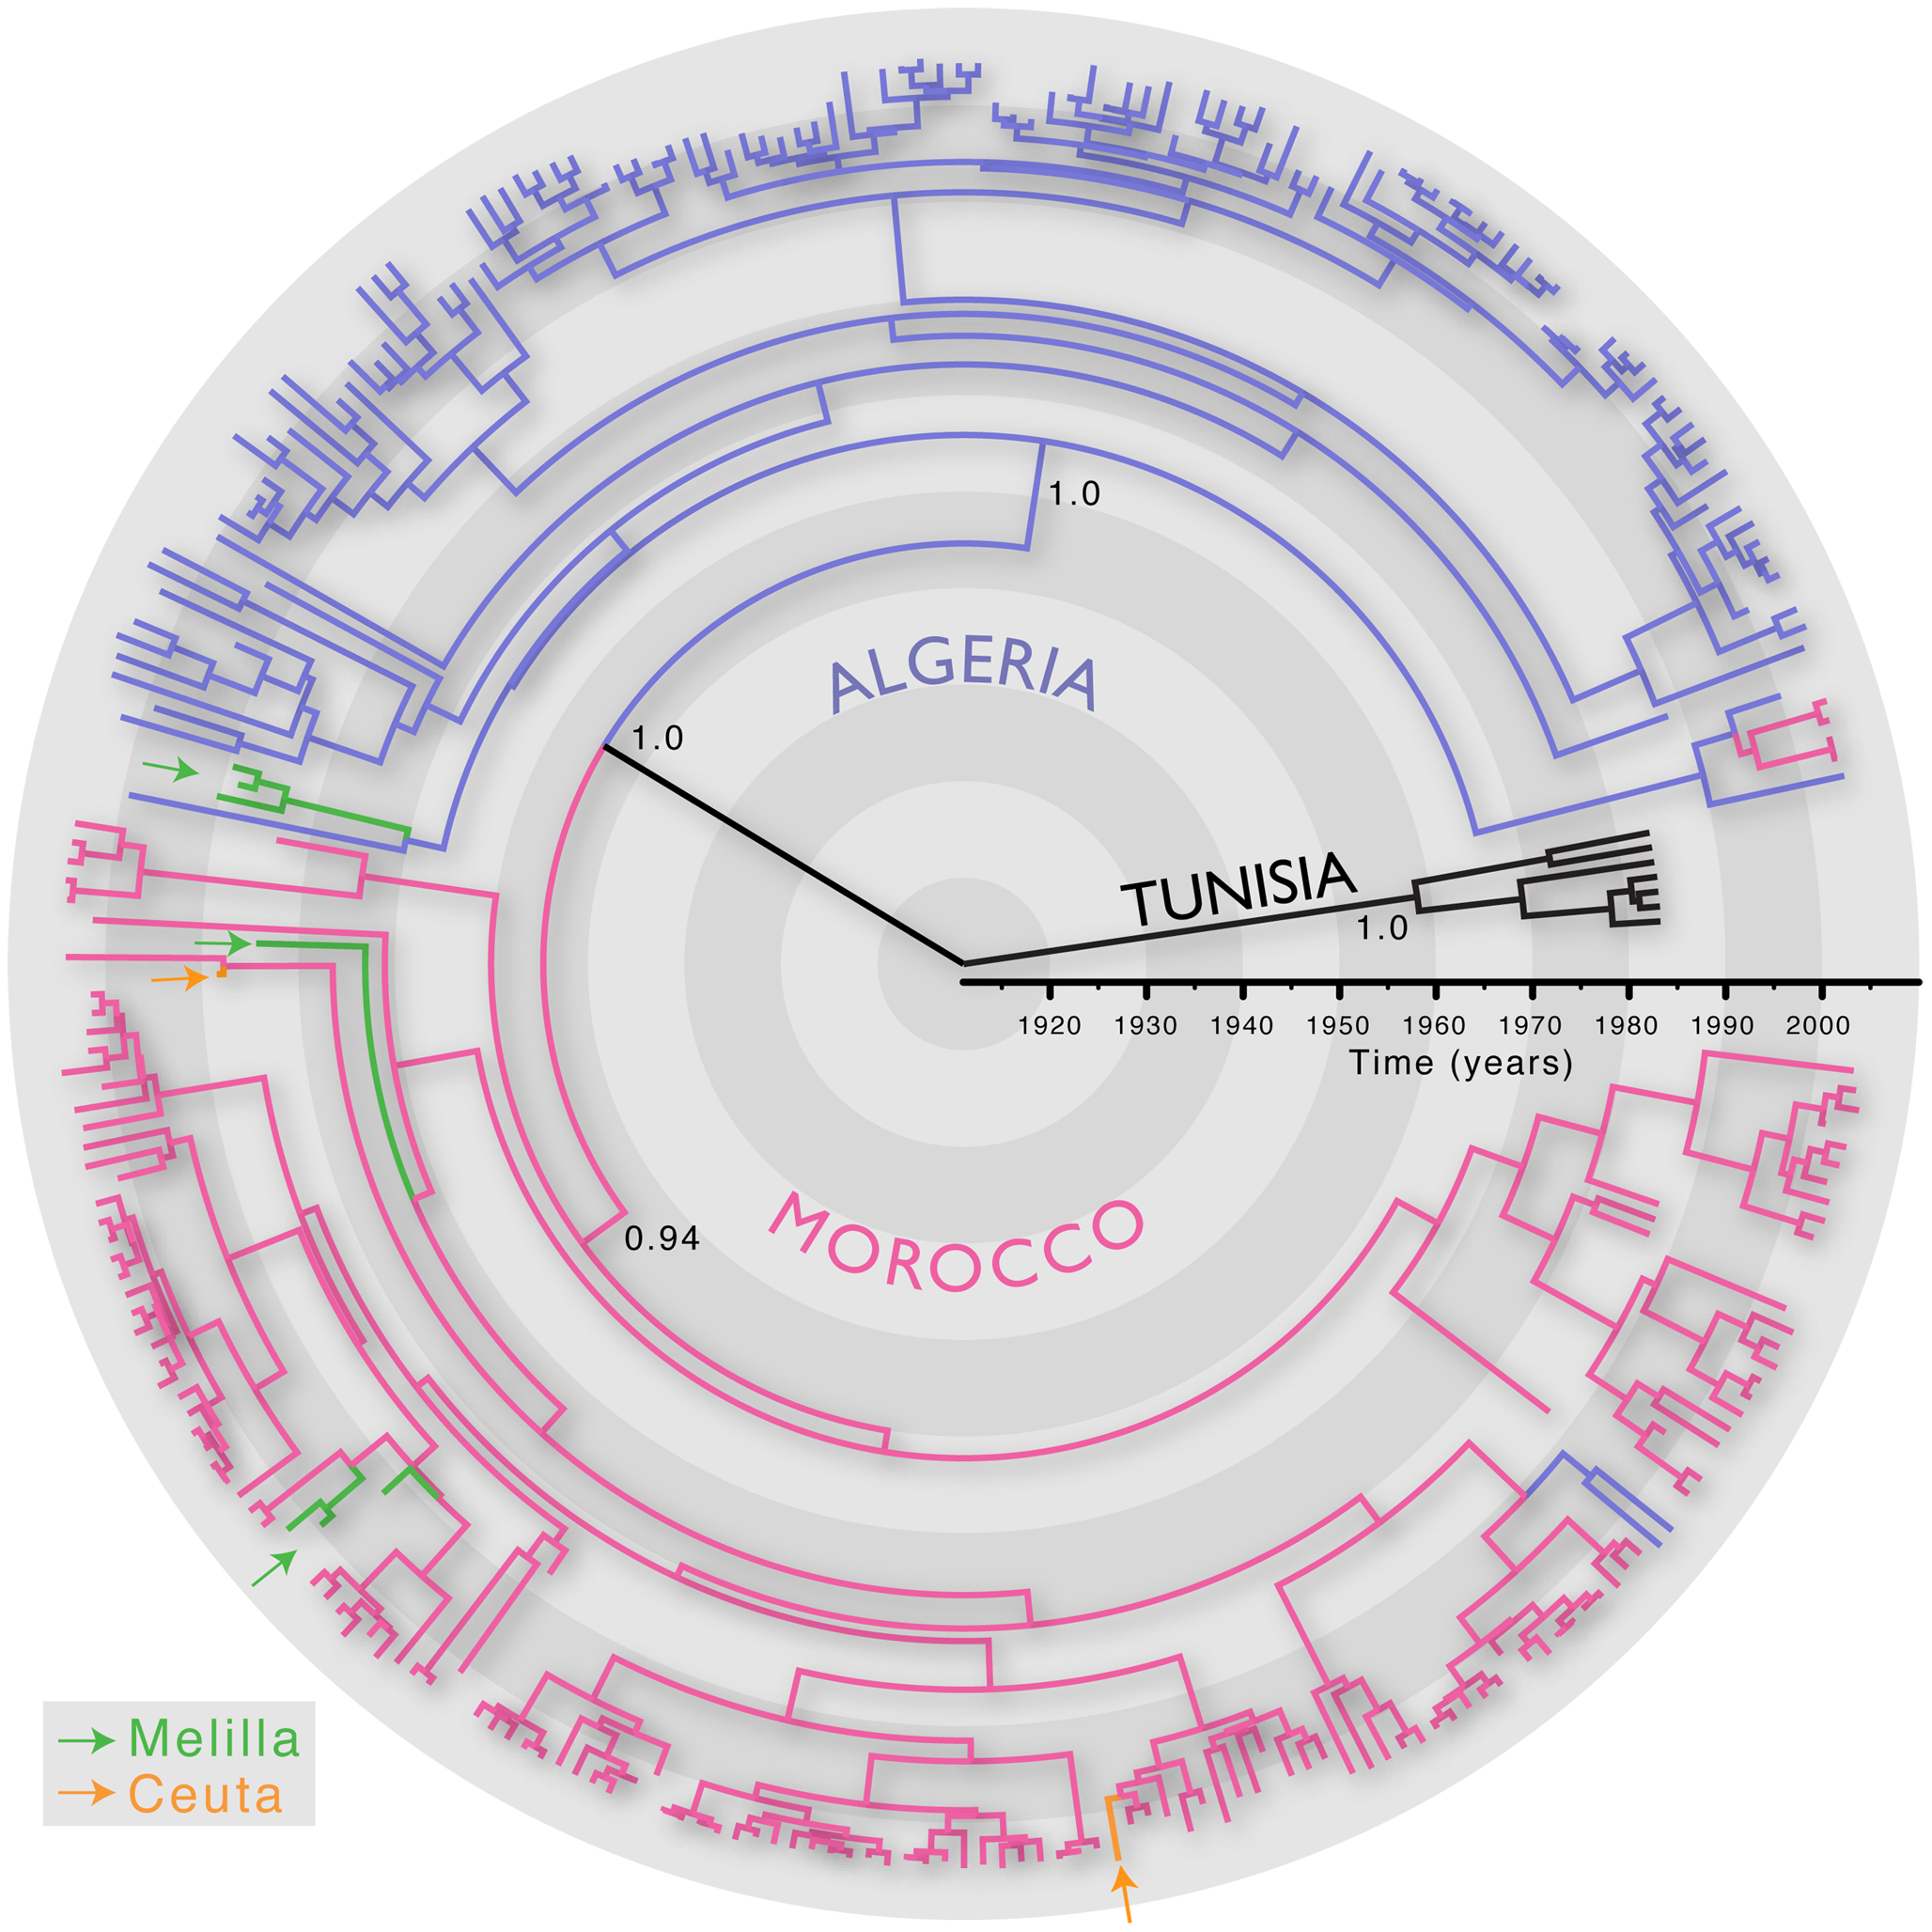 MCC tree of 287 sequences of the Africa 1 clade, estimated from the N, P and G-L genes and intergenic regions of dog RABV, and showing the spatial structure of the viral lineages.